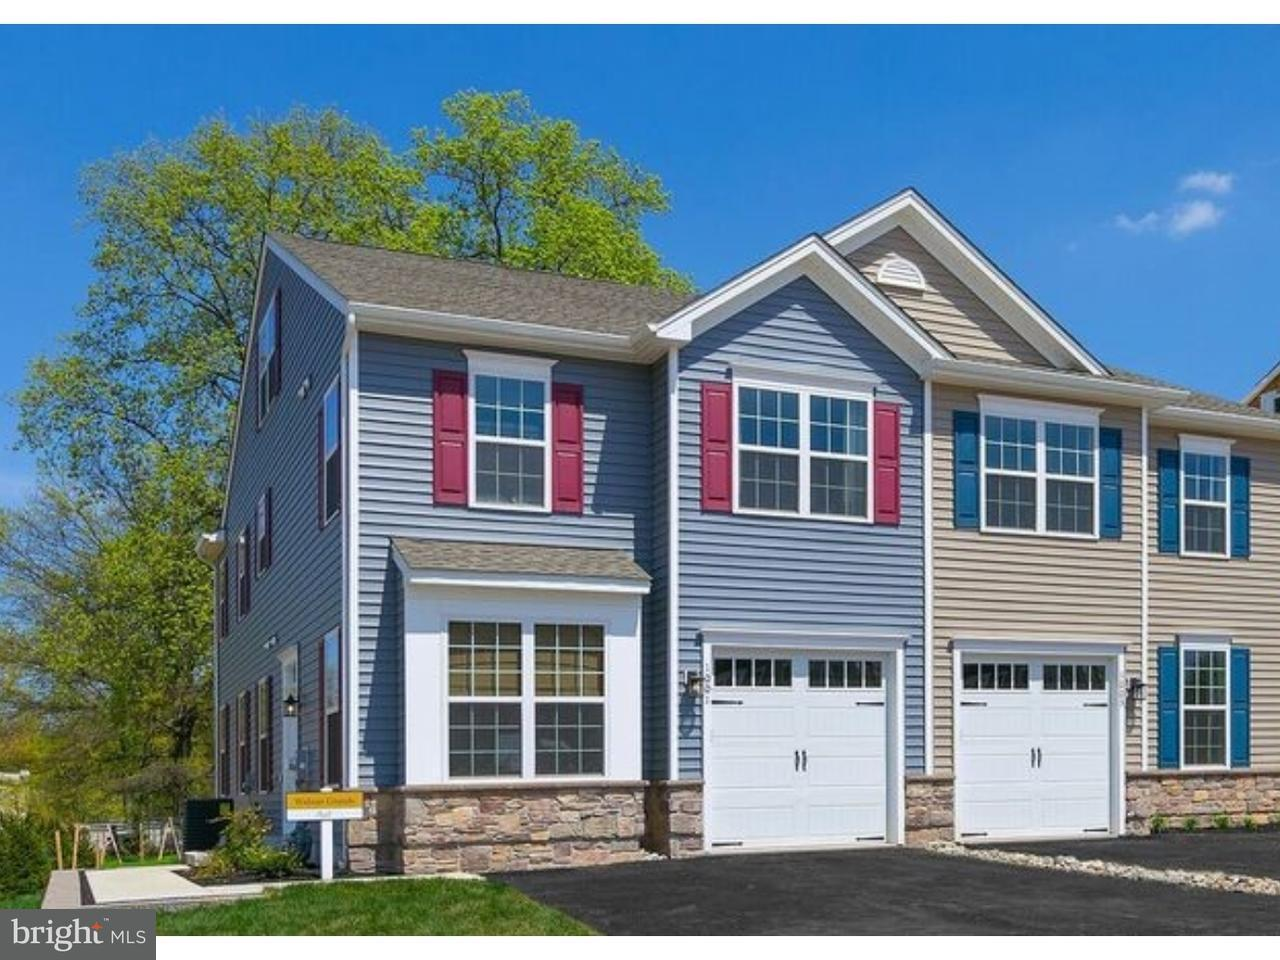 Townhouse for Sale at 1019 CHAPMAN CIR #10 Hatfield, Pennsylvania 19440 United States